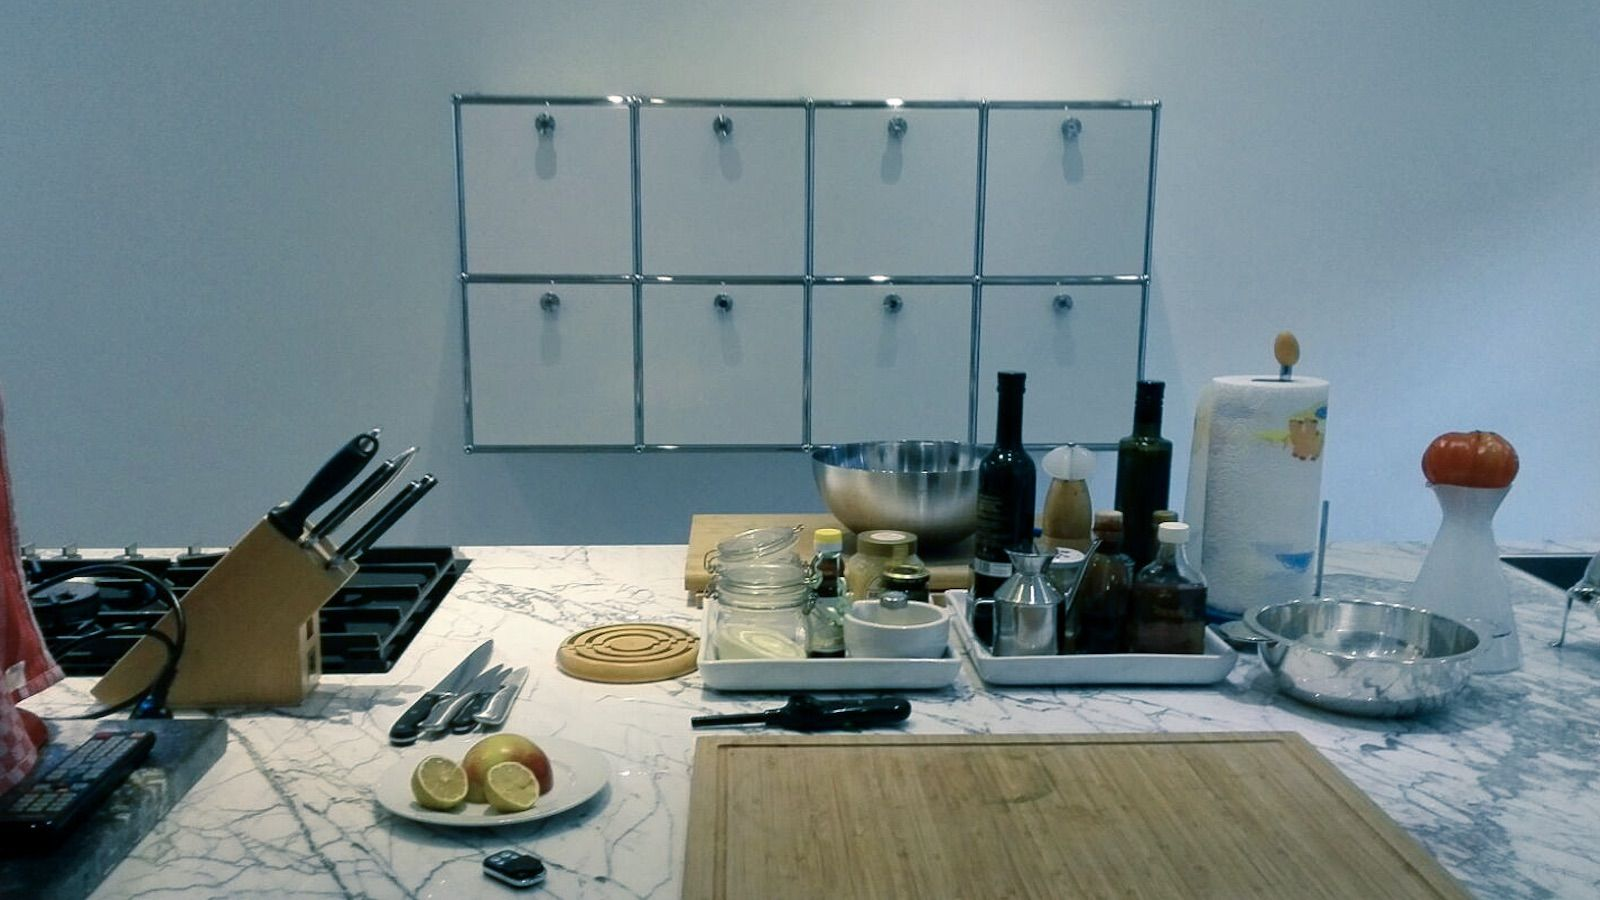 usm haller at the wall | USM Modular Furniture and Friends ...